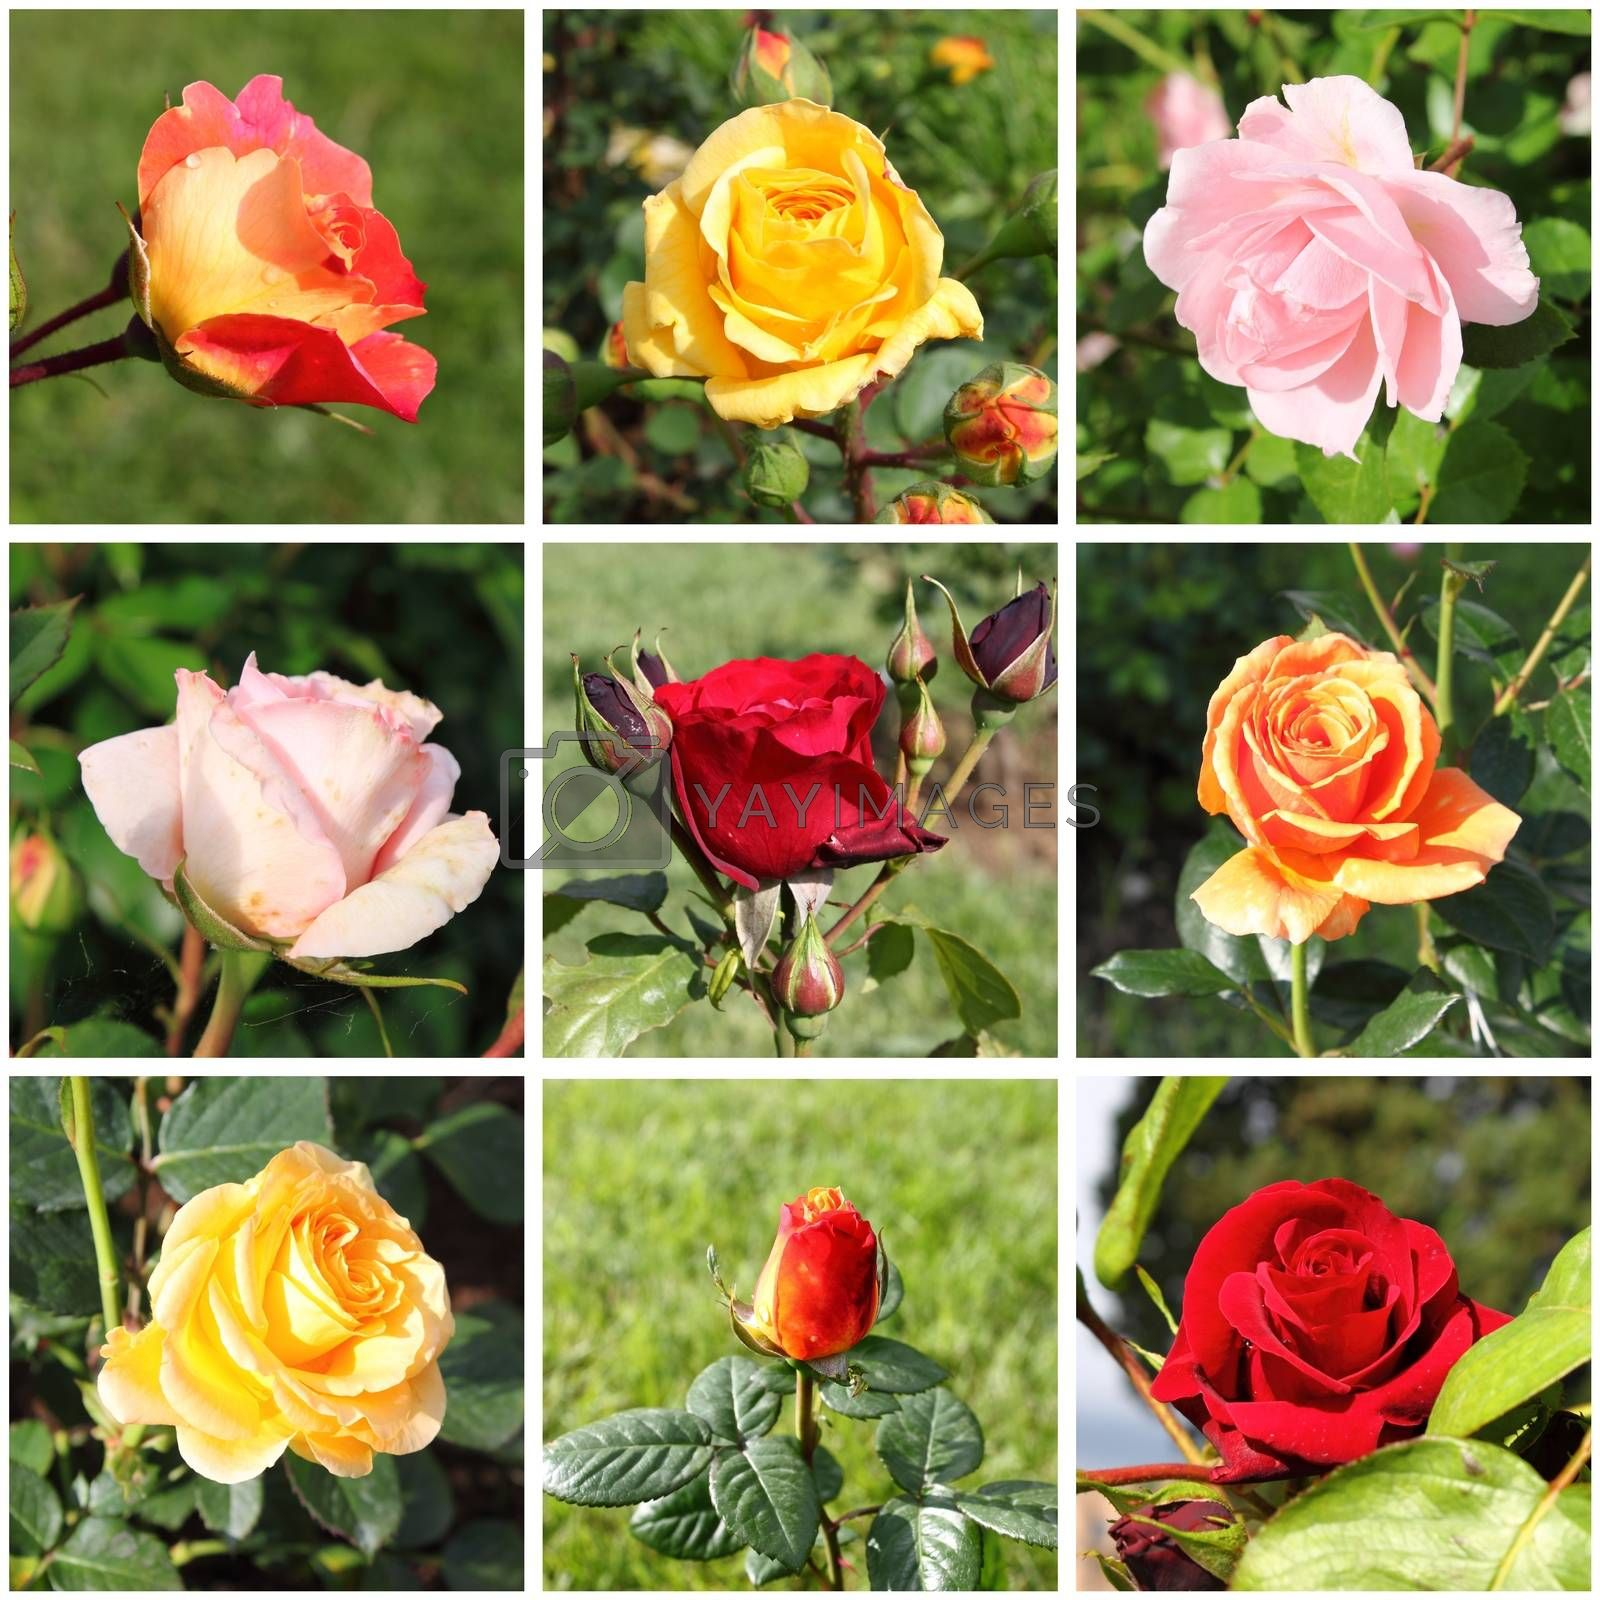 Collage of beautiful roses by alessandro0770